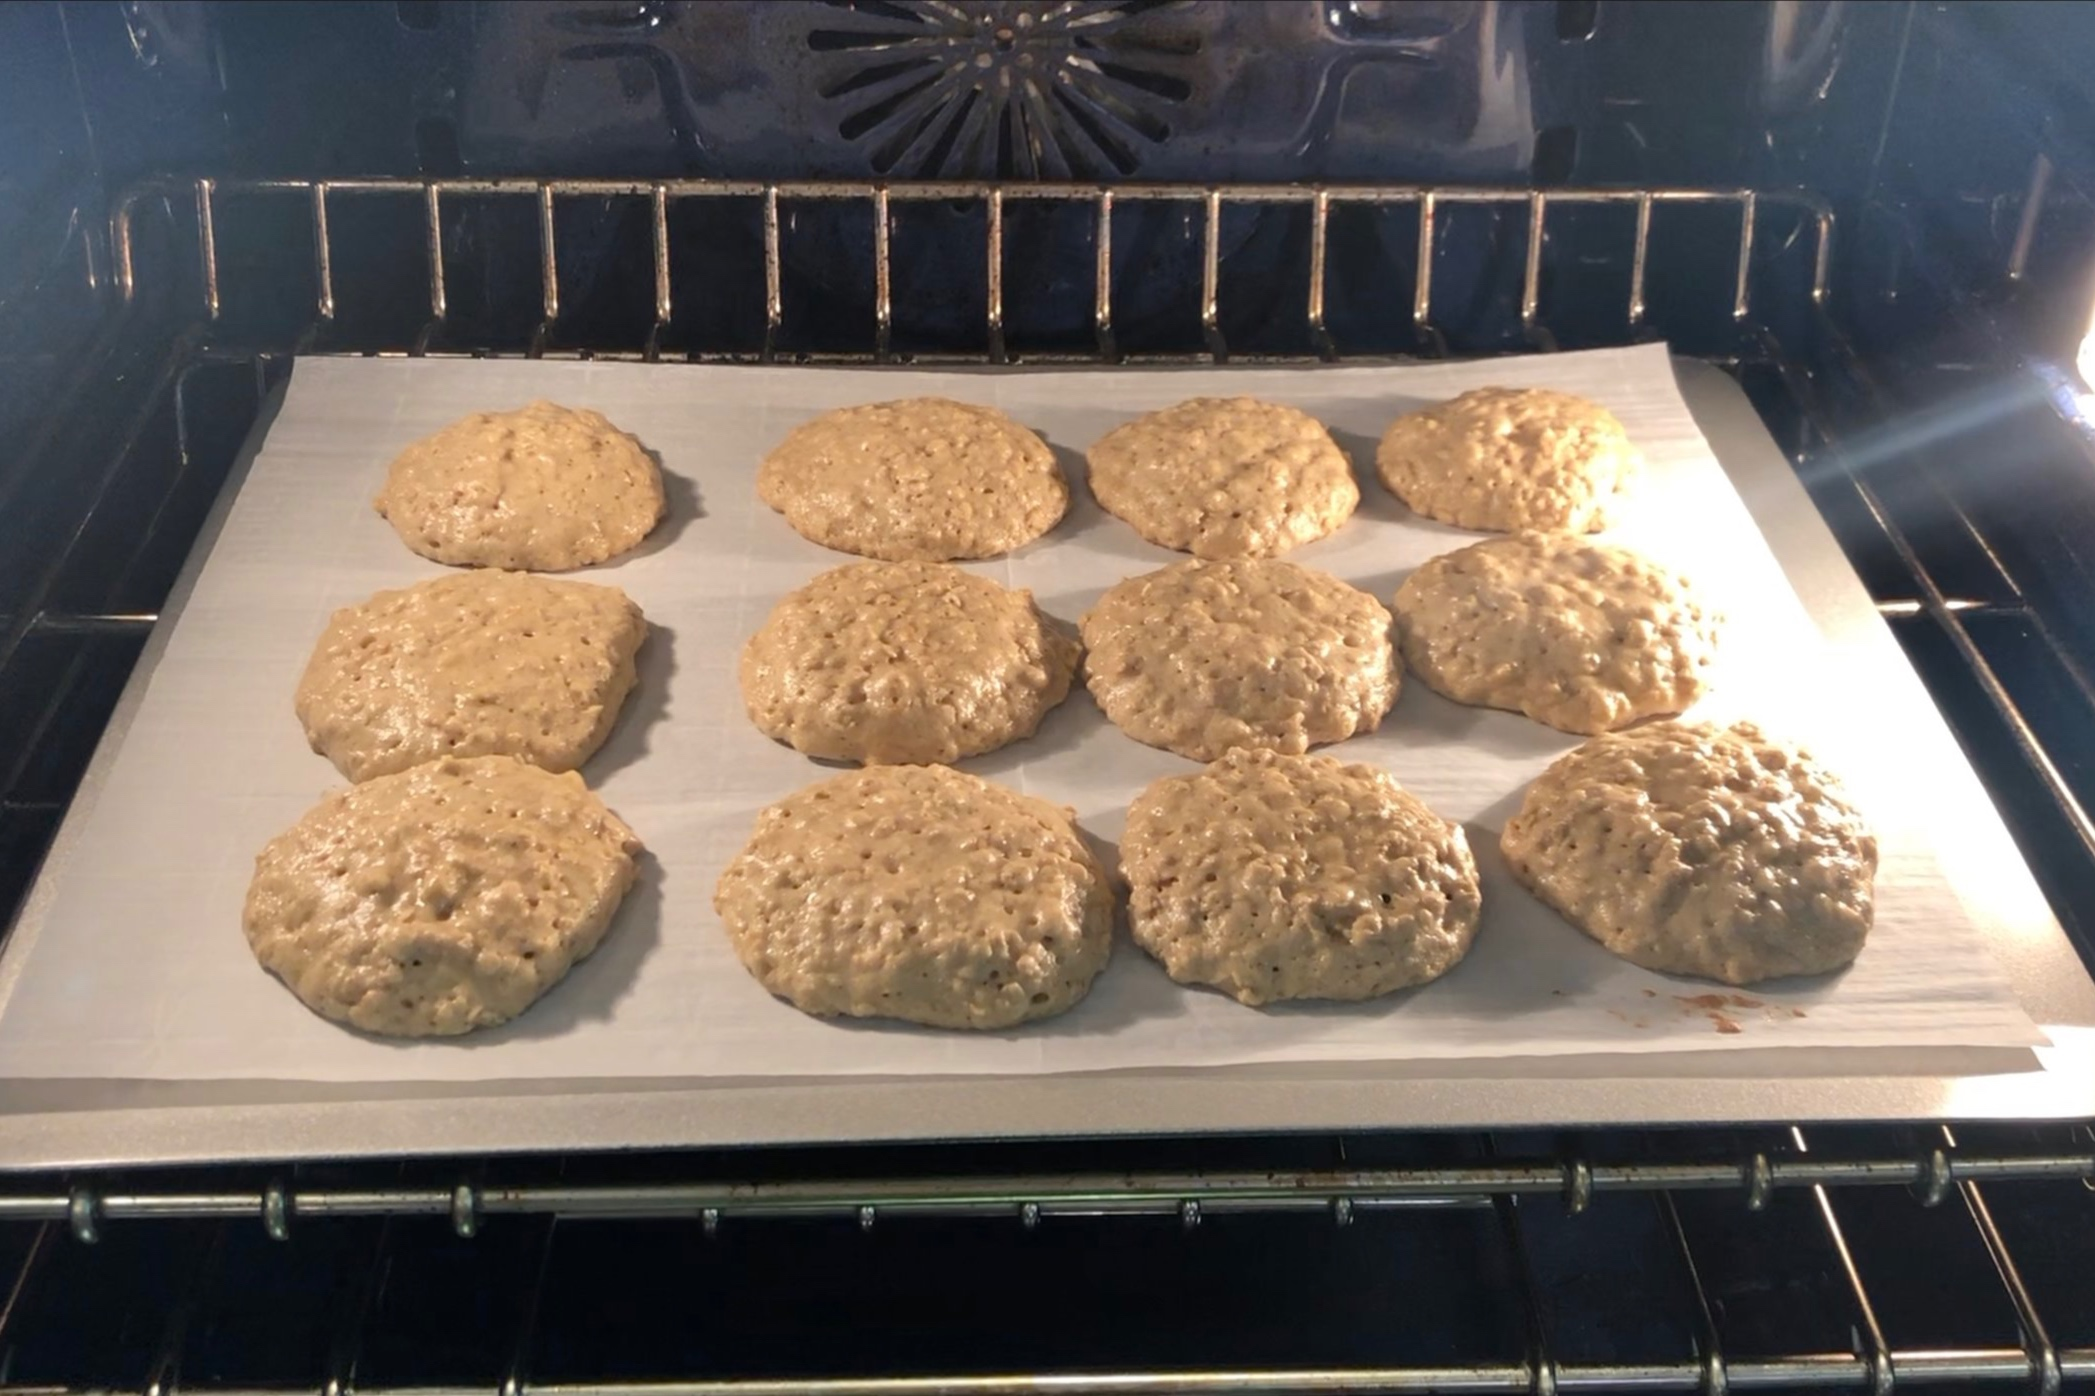 11. Bake for 10-12 minutes until cookies are golden brown on the bottom. -